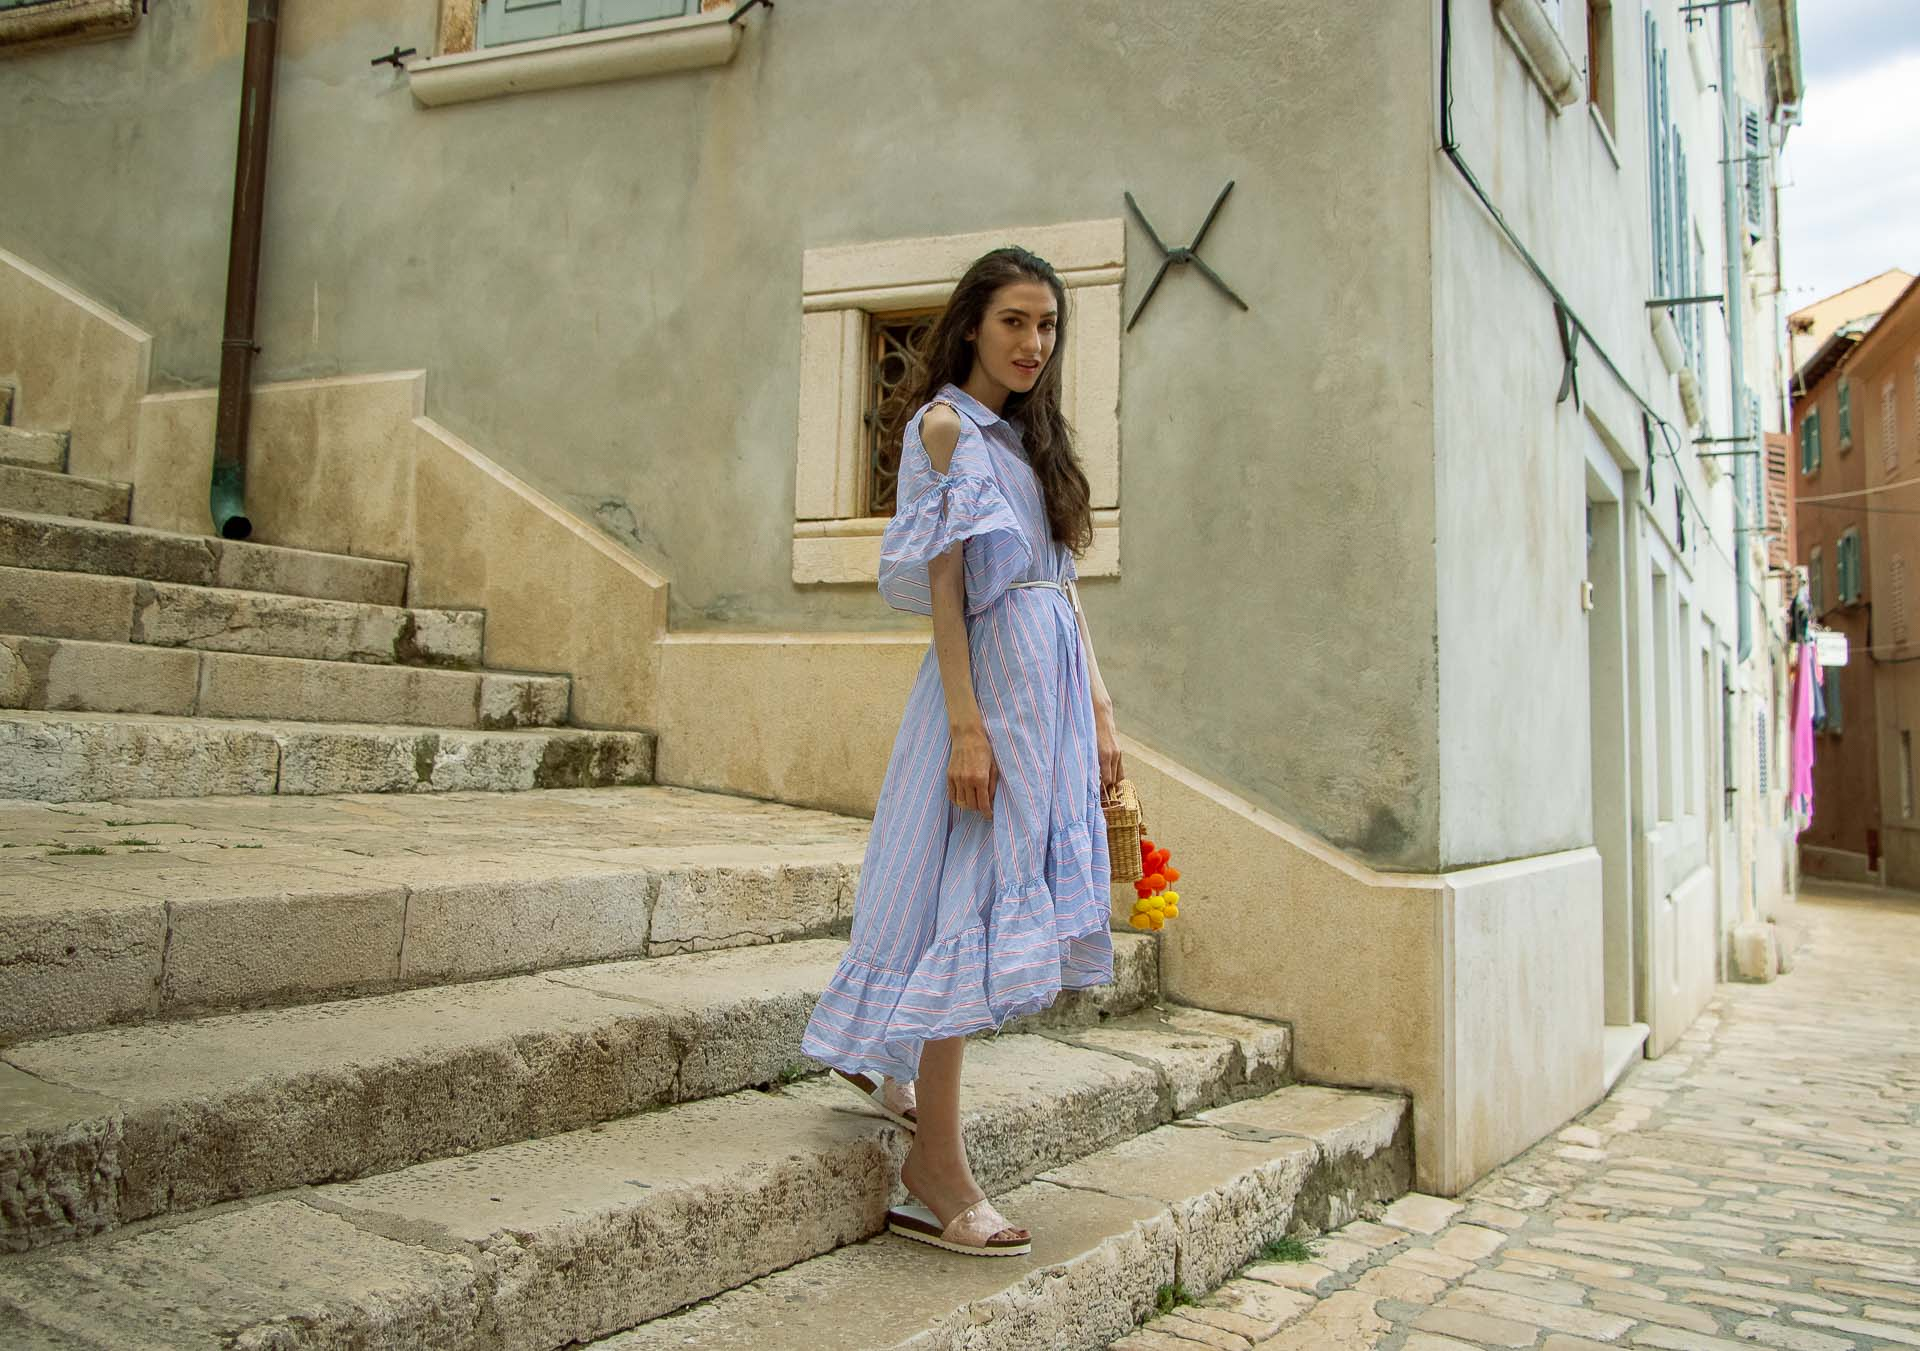 Fashion Blogger Veronika Lipar of Brunette from Wall Street dressed in Storets cold shoulder striped ruffled summer dress, blush lace pool luxe slides, Nannacay basket bag, standing on the stone paved stairs in Rovinj Croatia